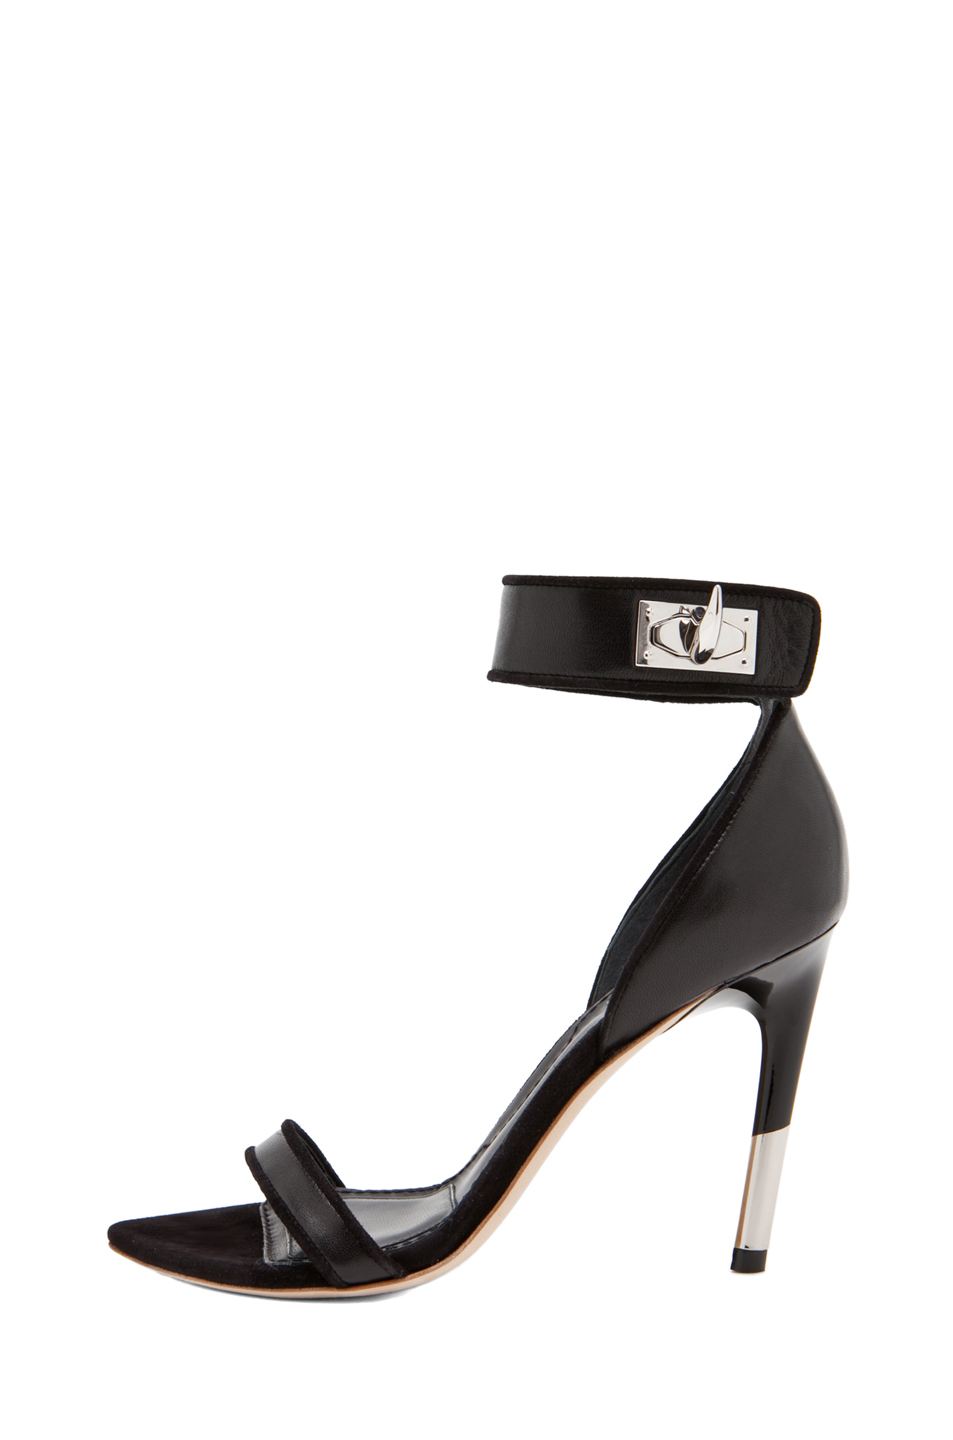 GIVENCHY|Guerra Nappa Leather Heel in Black